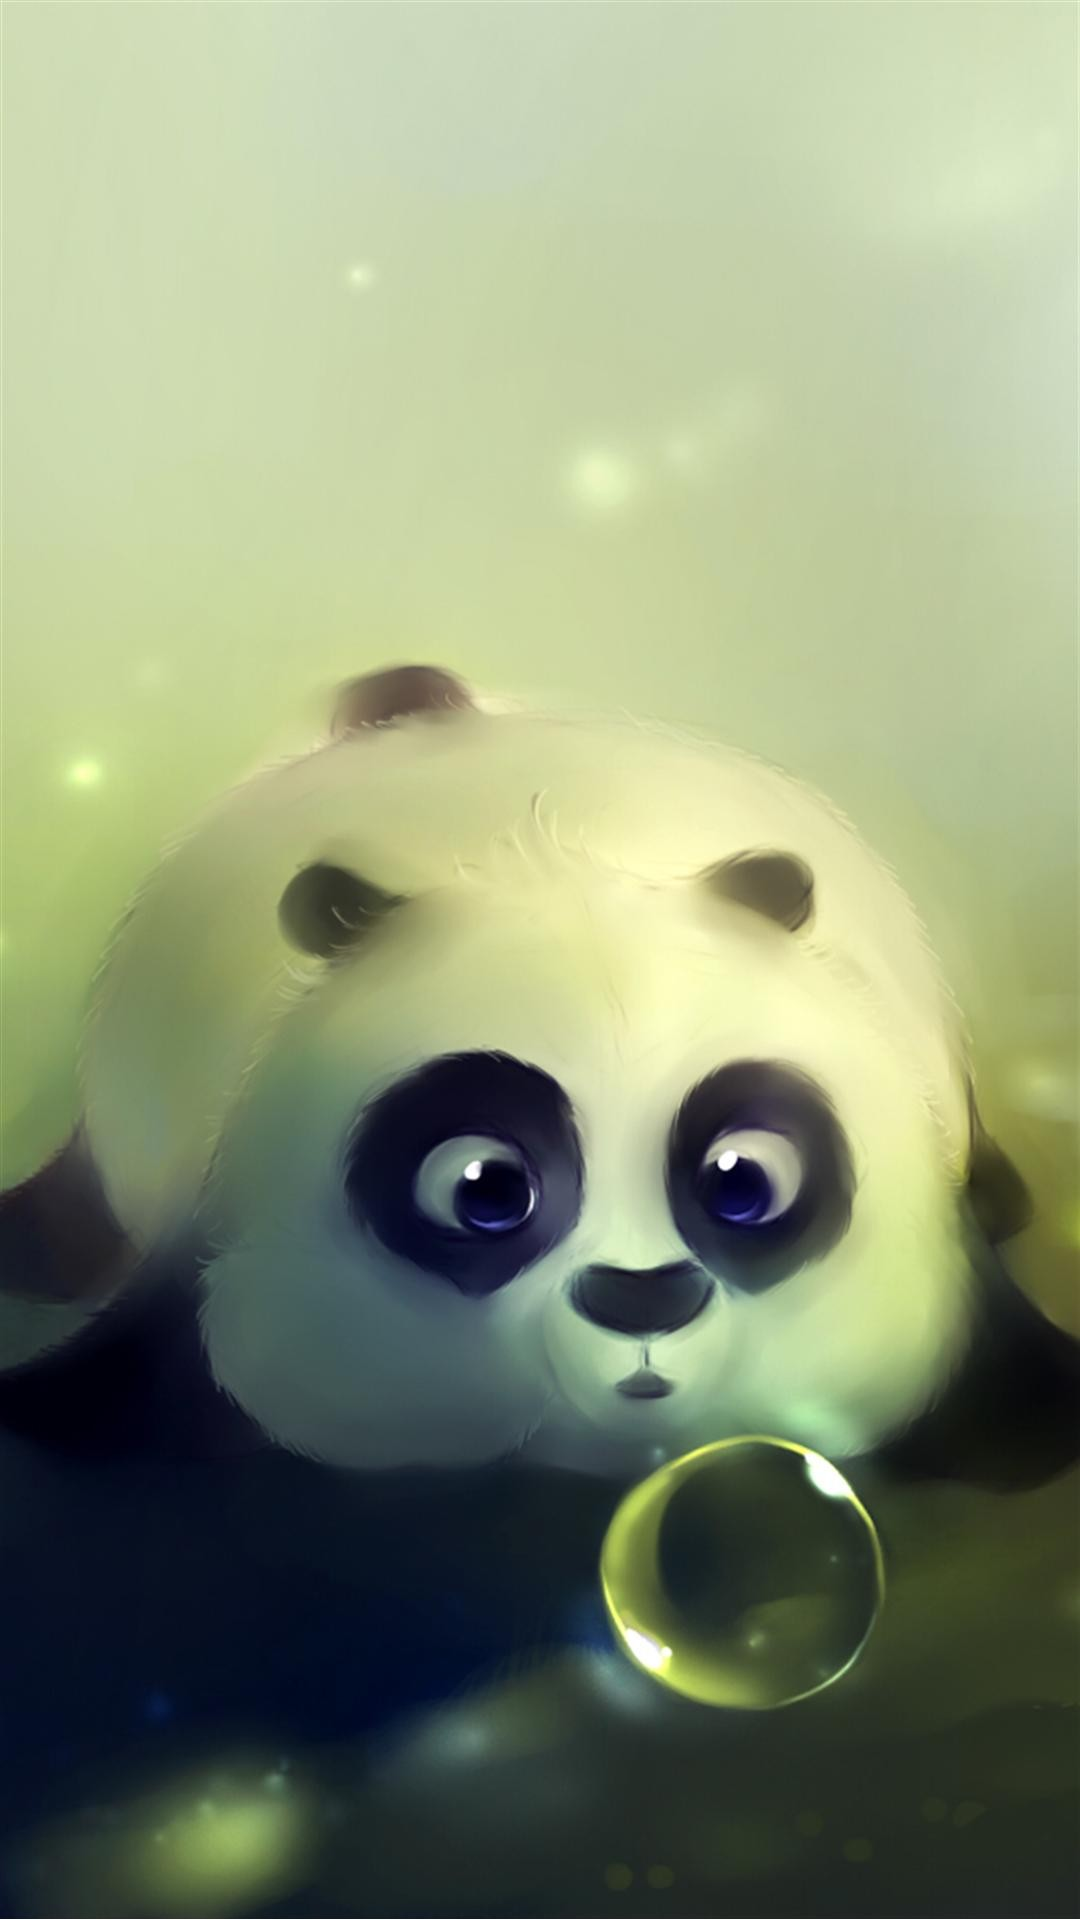 Cute-Panda-Bubble-iPhone-Plus-HD-wallpaper-wpc5803861